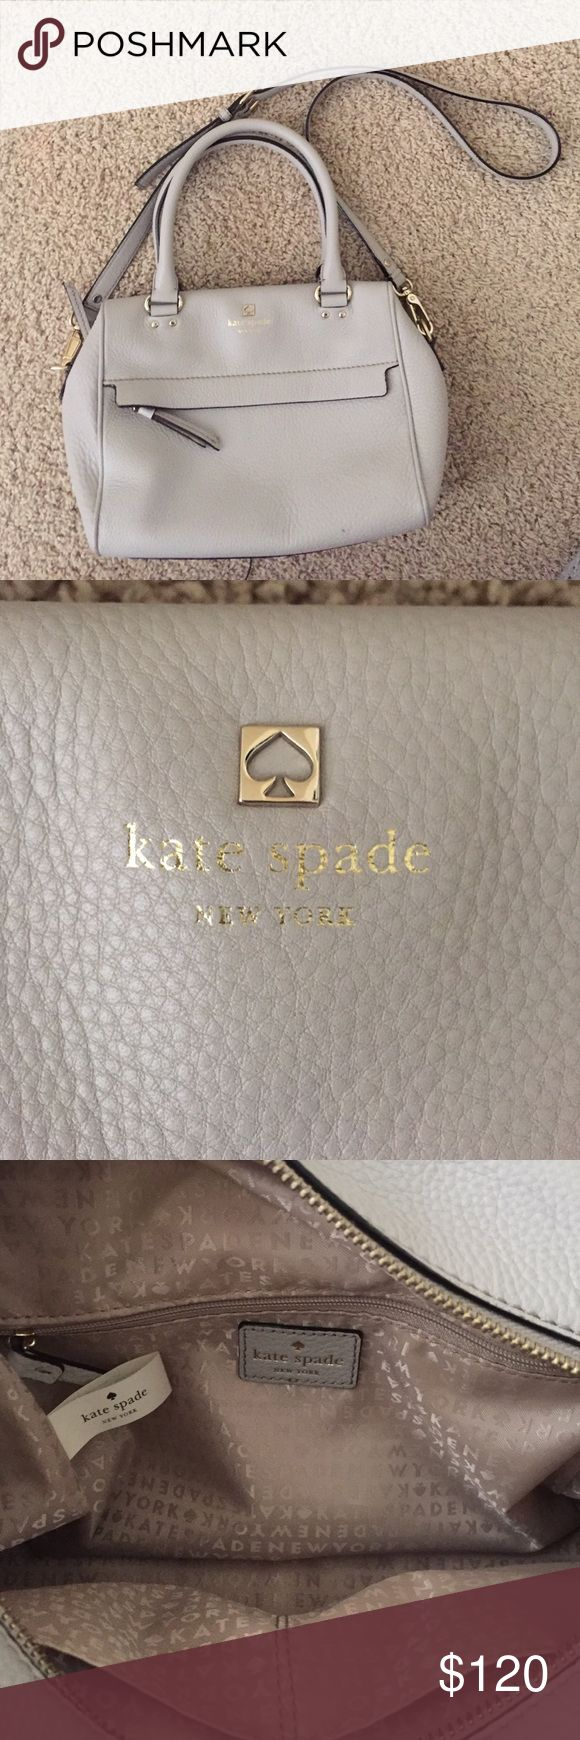 Kate Spade pebbled leather crossbody Dove grey pebbled leather Kate Spade crossbody. Light gold detailing. 1 zippered pocket on outside. 2 pockets and 1 zippered pocket on inside. Gold lining on inside. Adjustable strap. In great condition with the exception of a tiny mark pictured. kate spade Bags Crossbody Bags